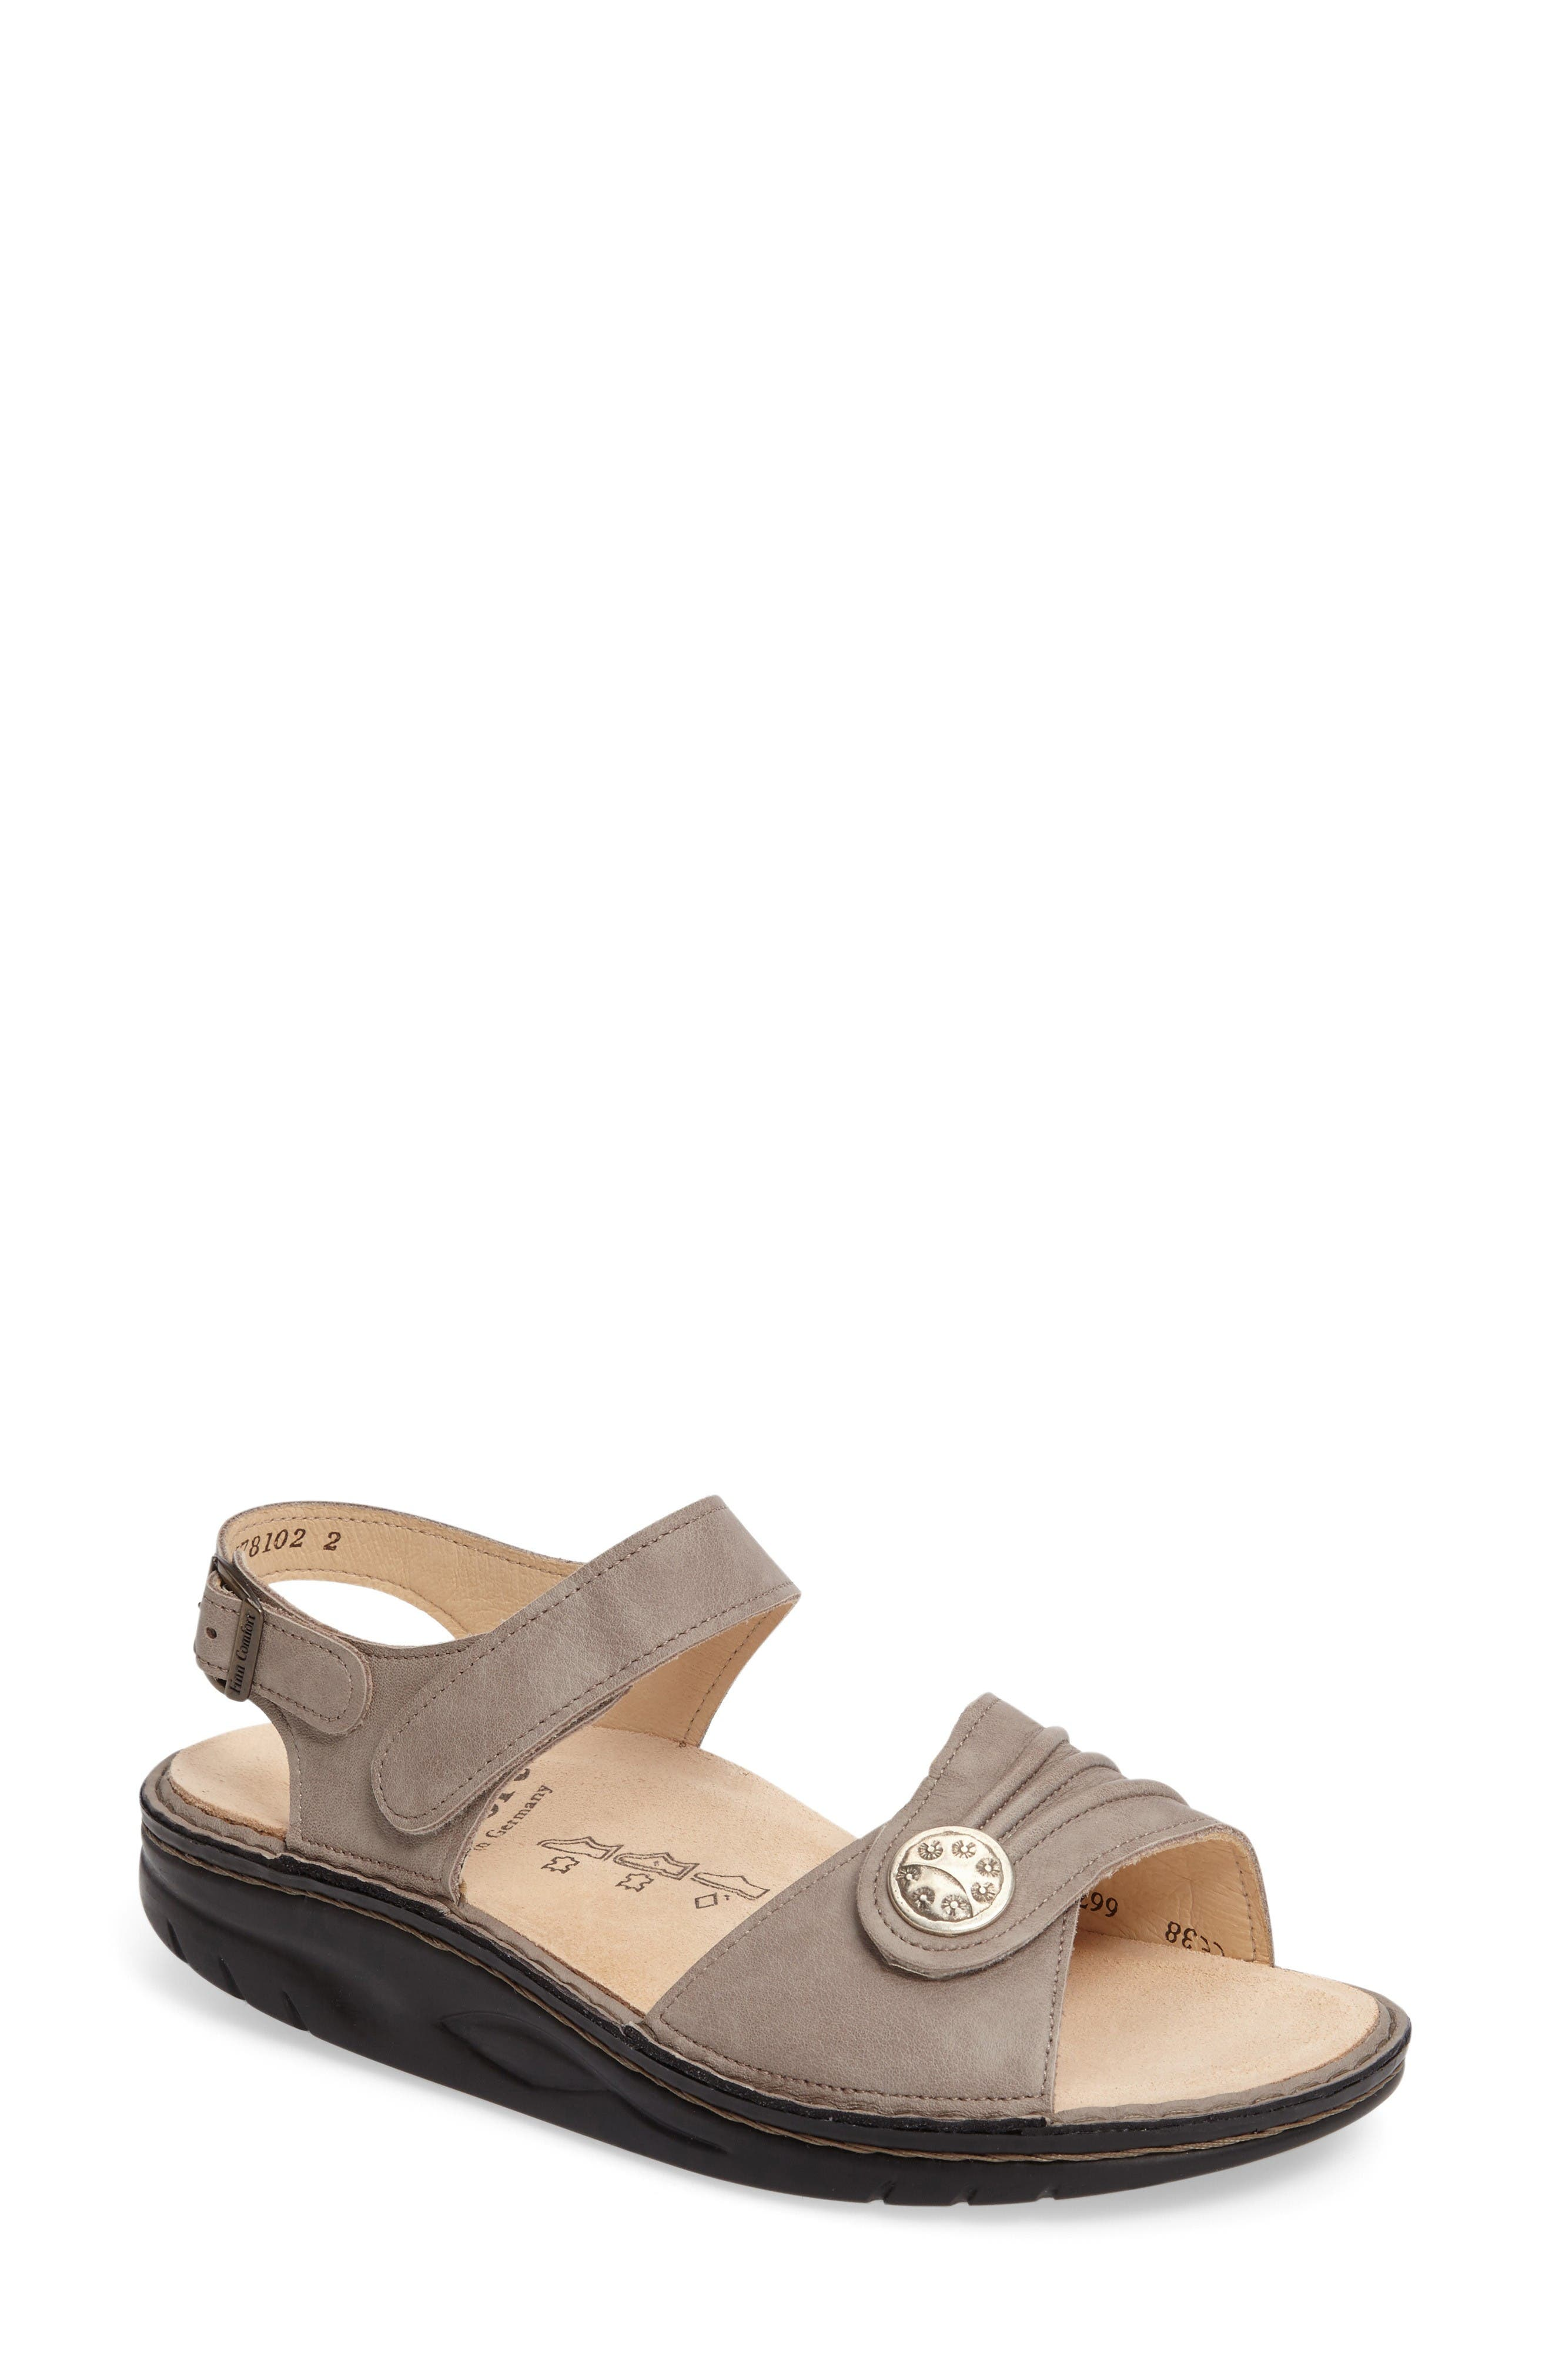 Alternate Image 1 Selected - FINNAMIC by Finn Comfort 'Sausalito' Sandal (Online Only)